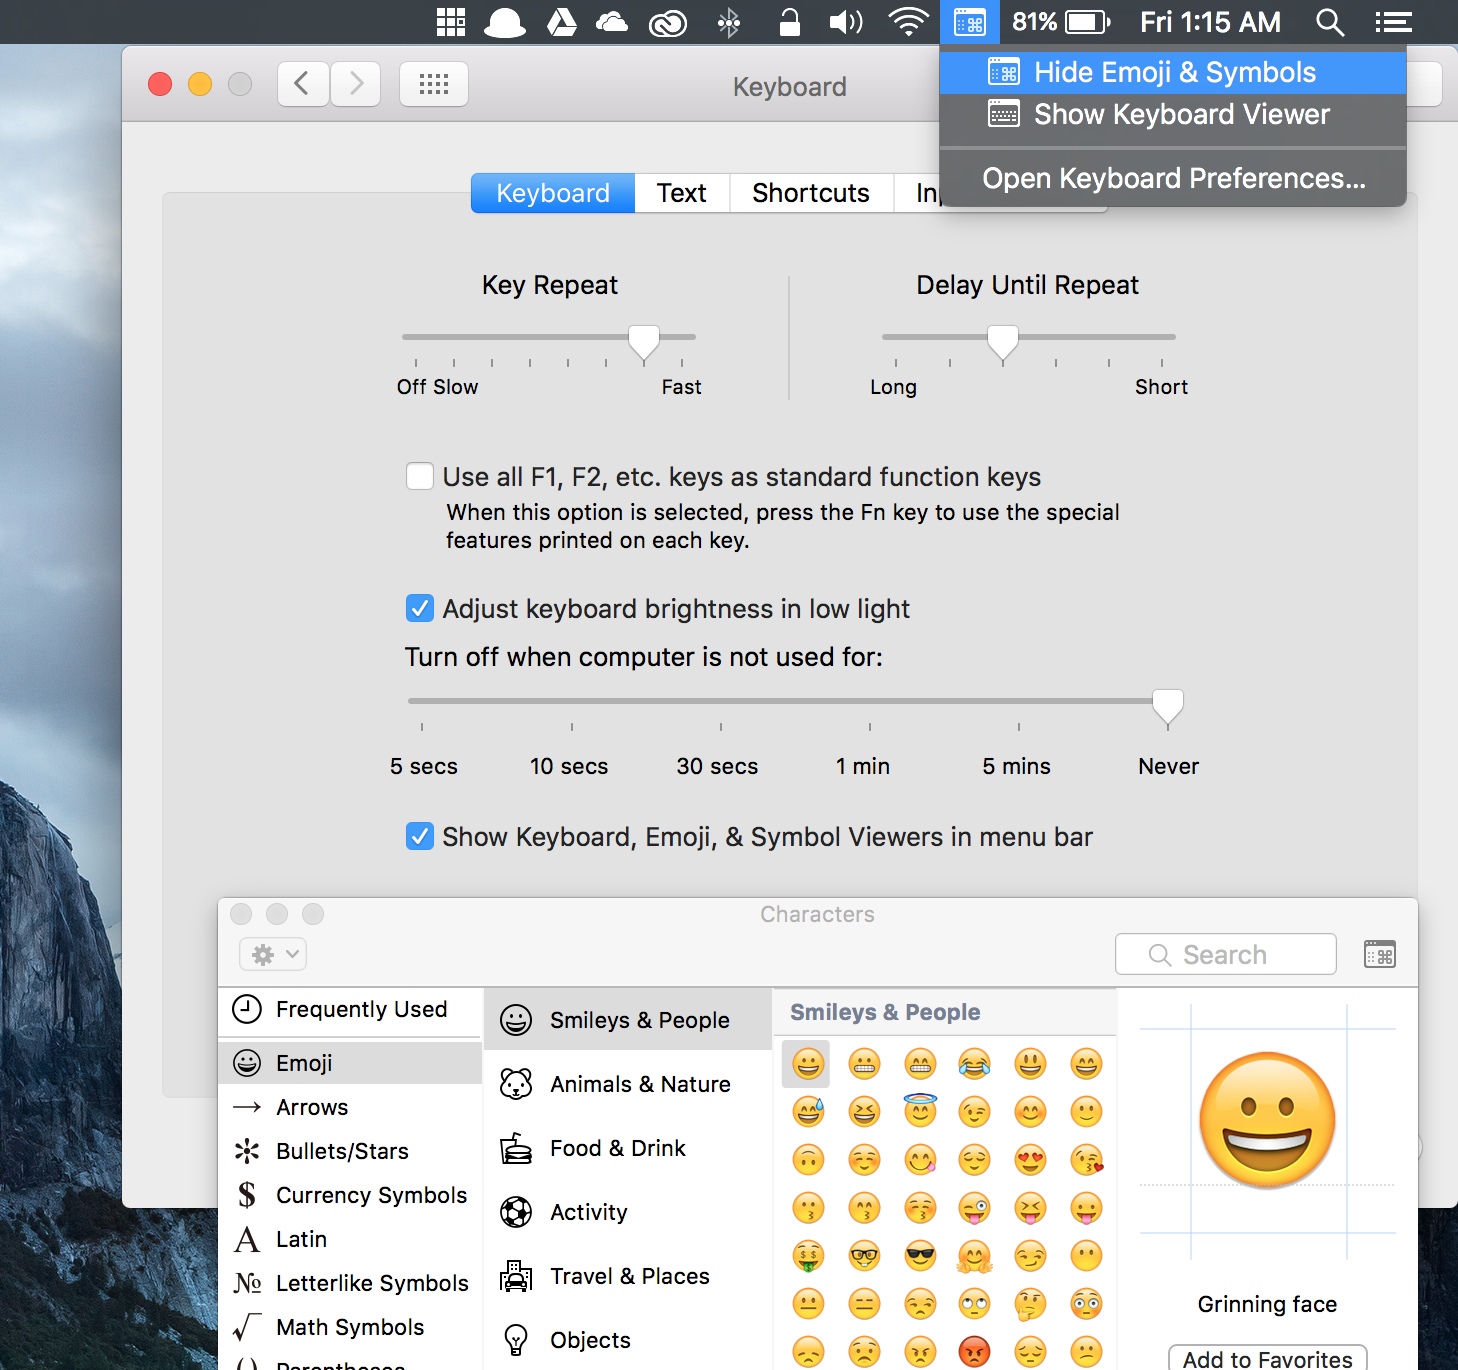 Osx status bar tricks for the mac poweruser alexander paterson in the keyboard preferences of your mac theres an option to add an emoji and symbols shortcut to the status bar the keyboard shortcut space also biocorpaavc Gallery